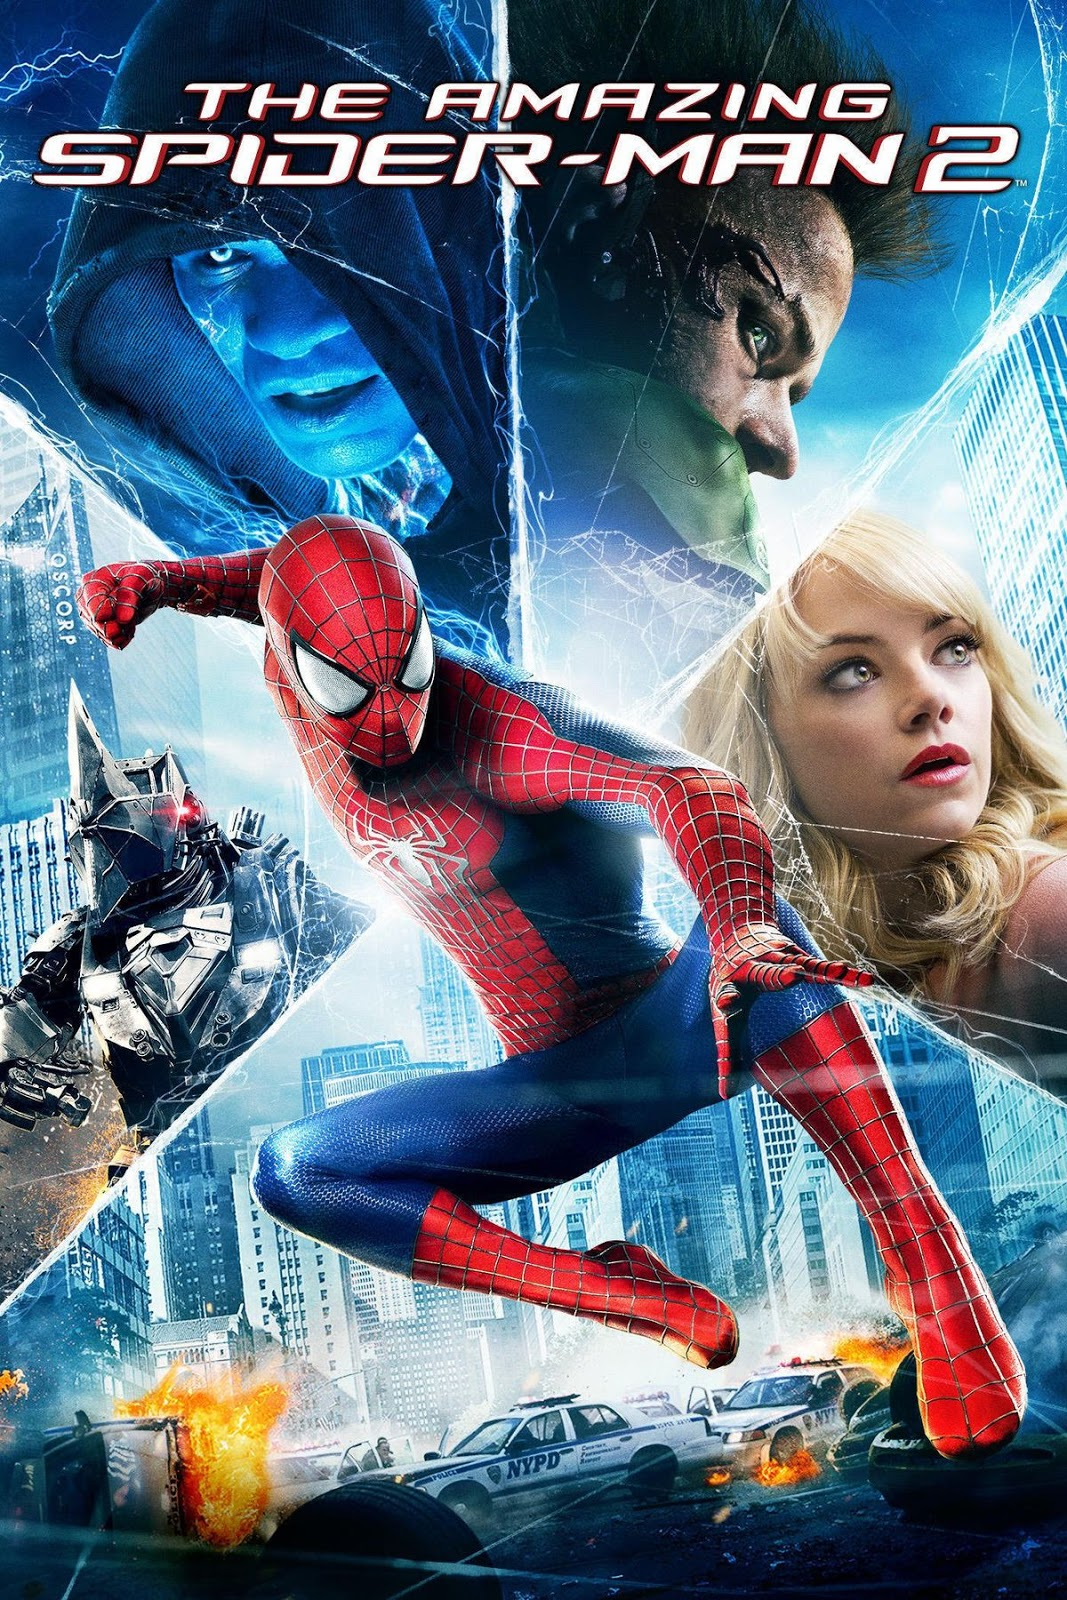 the amazing spiderman review Five minutes into the amazing spider-man, i got bitten with pleasure a friskier,  sweeter-natured variation on the story sam raimi told in his.